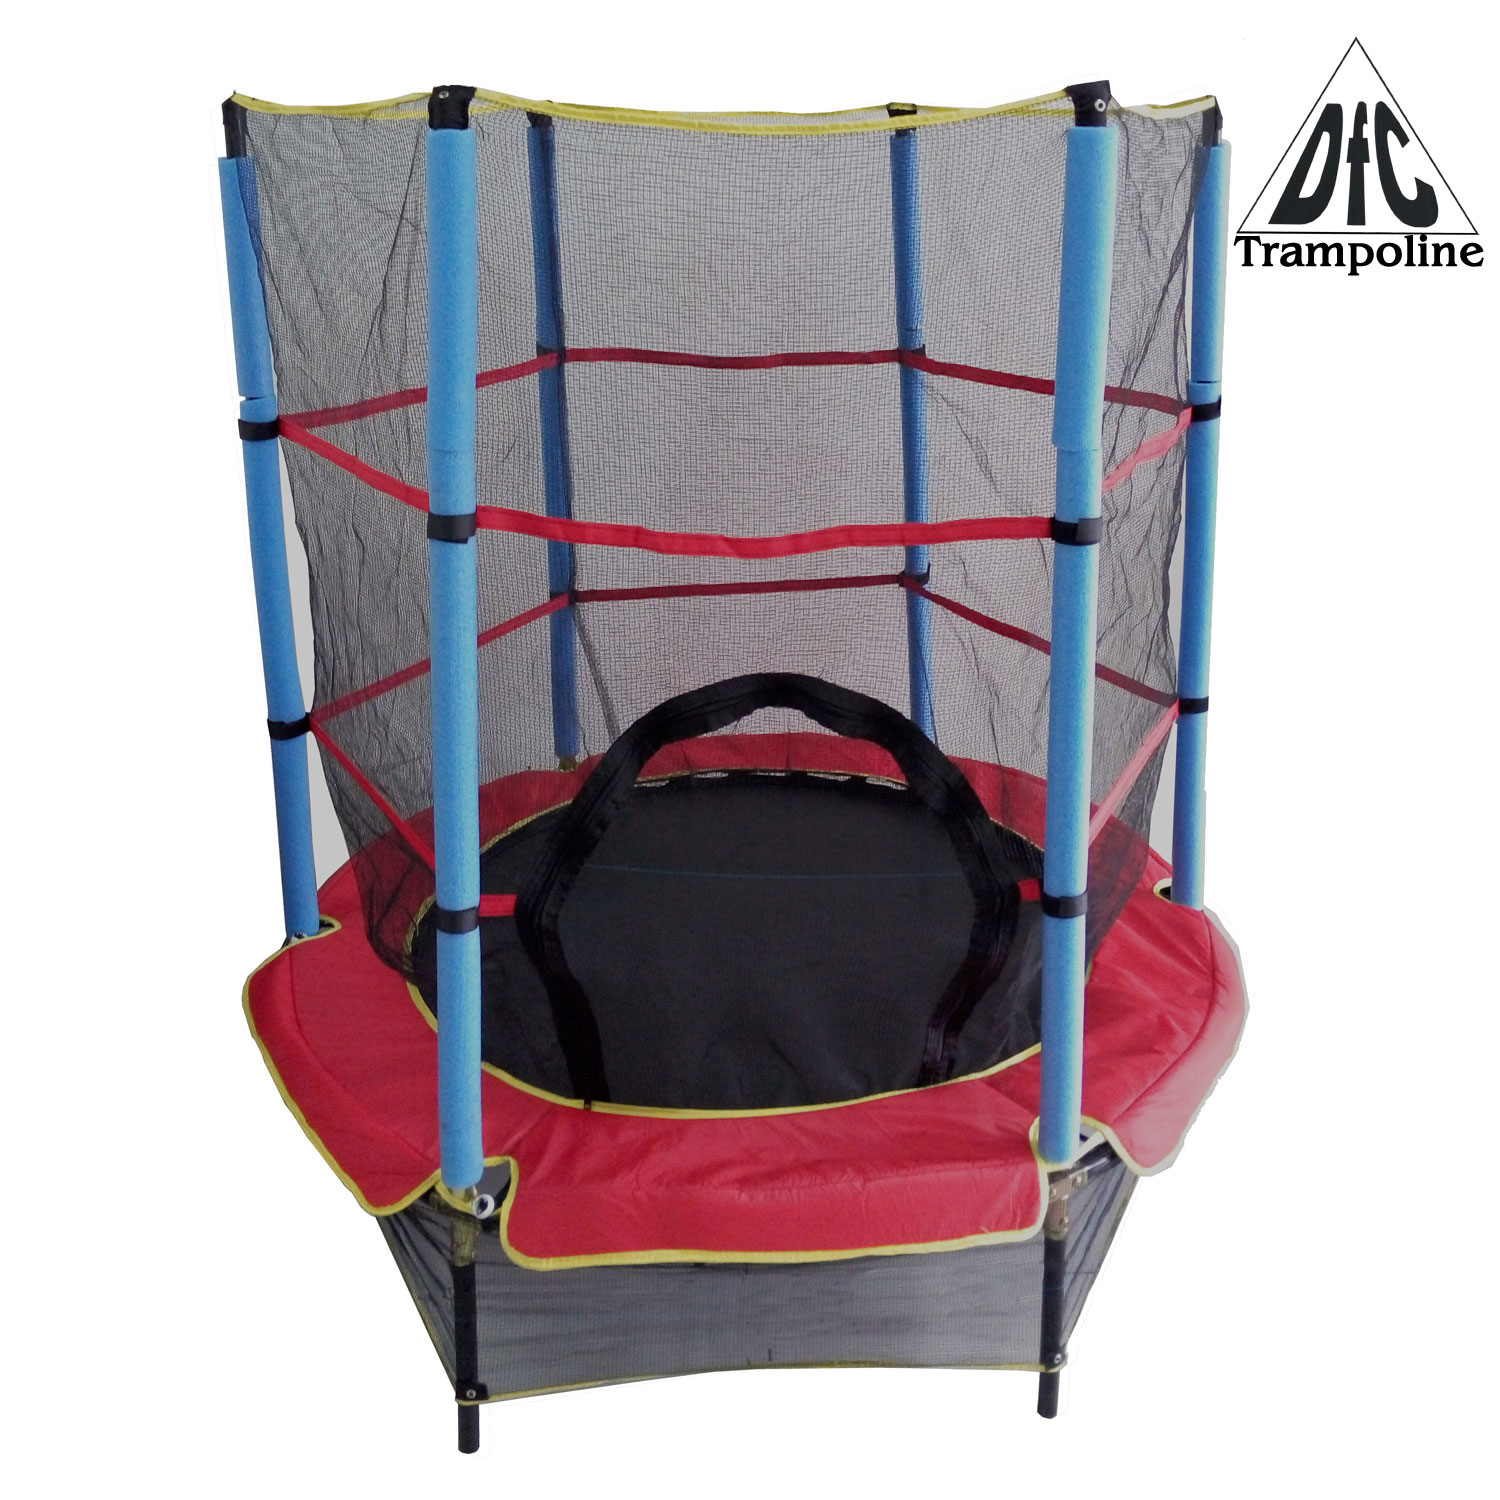 Арт. - БАТУТ DFC TRAMPOLINE FITNESS 55INCH-TR-E, 7490 рублей<a class='btn btn-primary btn-xs' style='margin-left:7px;' href='http://numberfive.ru/c_main/product_view/id_product/10062 '> Cмотреть </a>